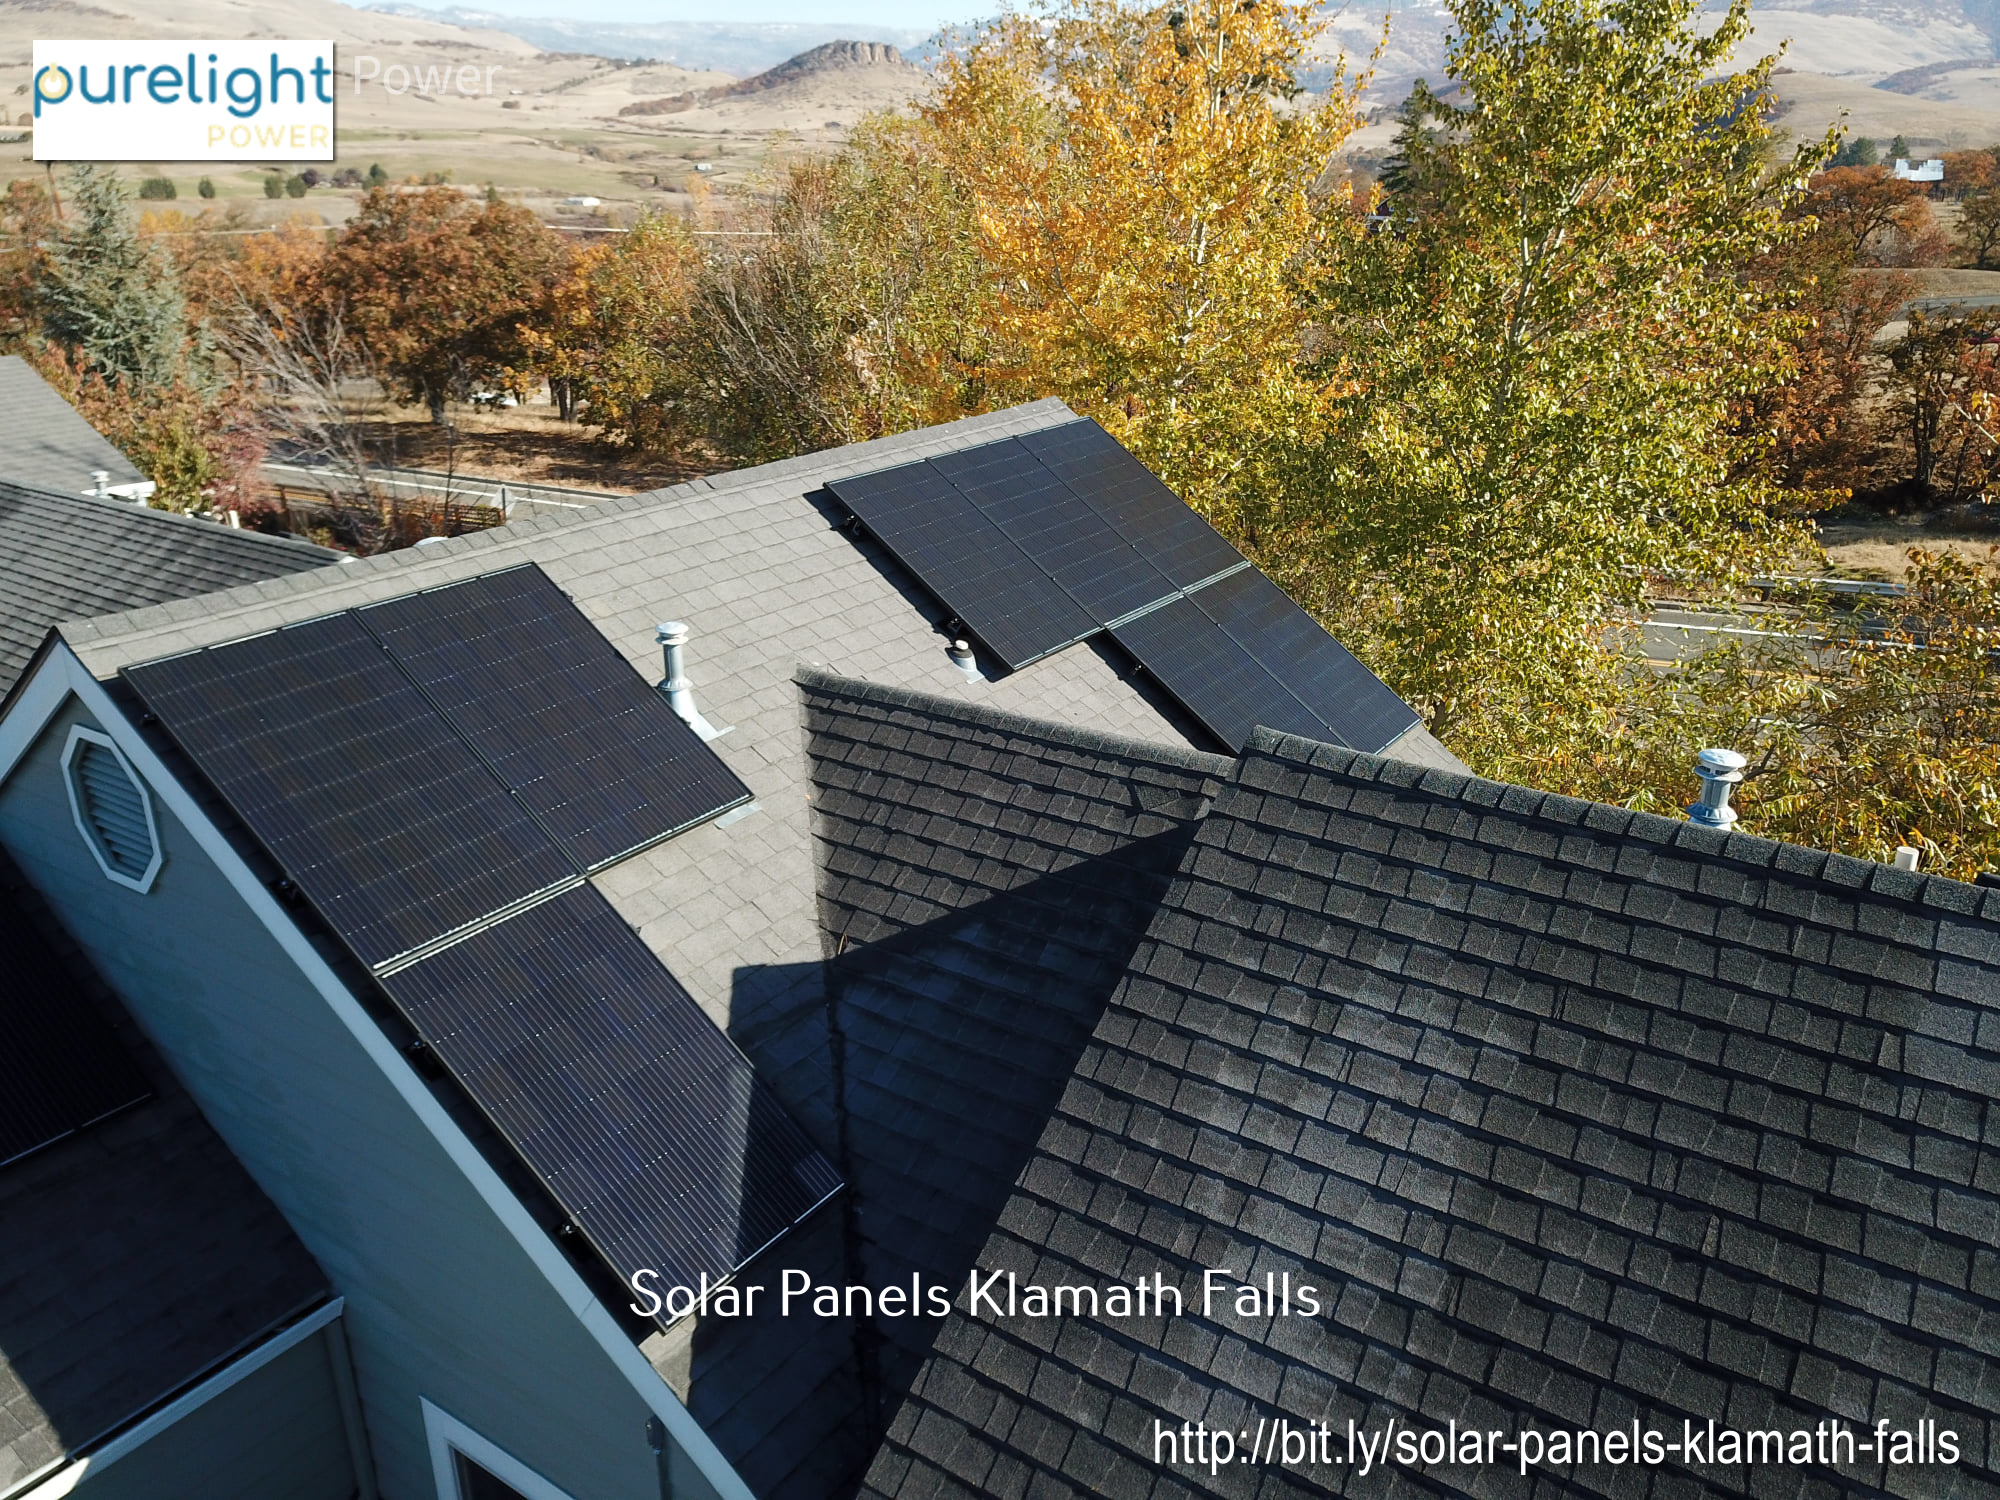 Purelight Power Outlines What To Look for in A Solar Installation Company